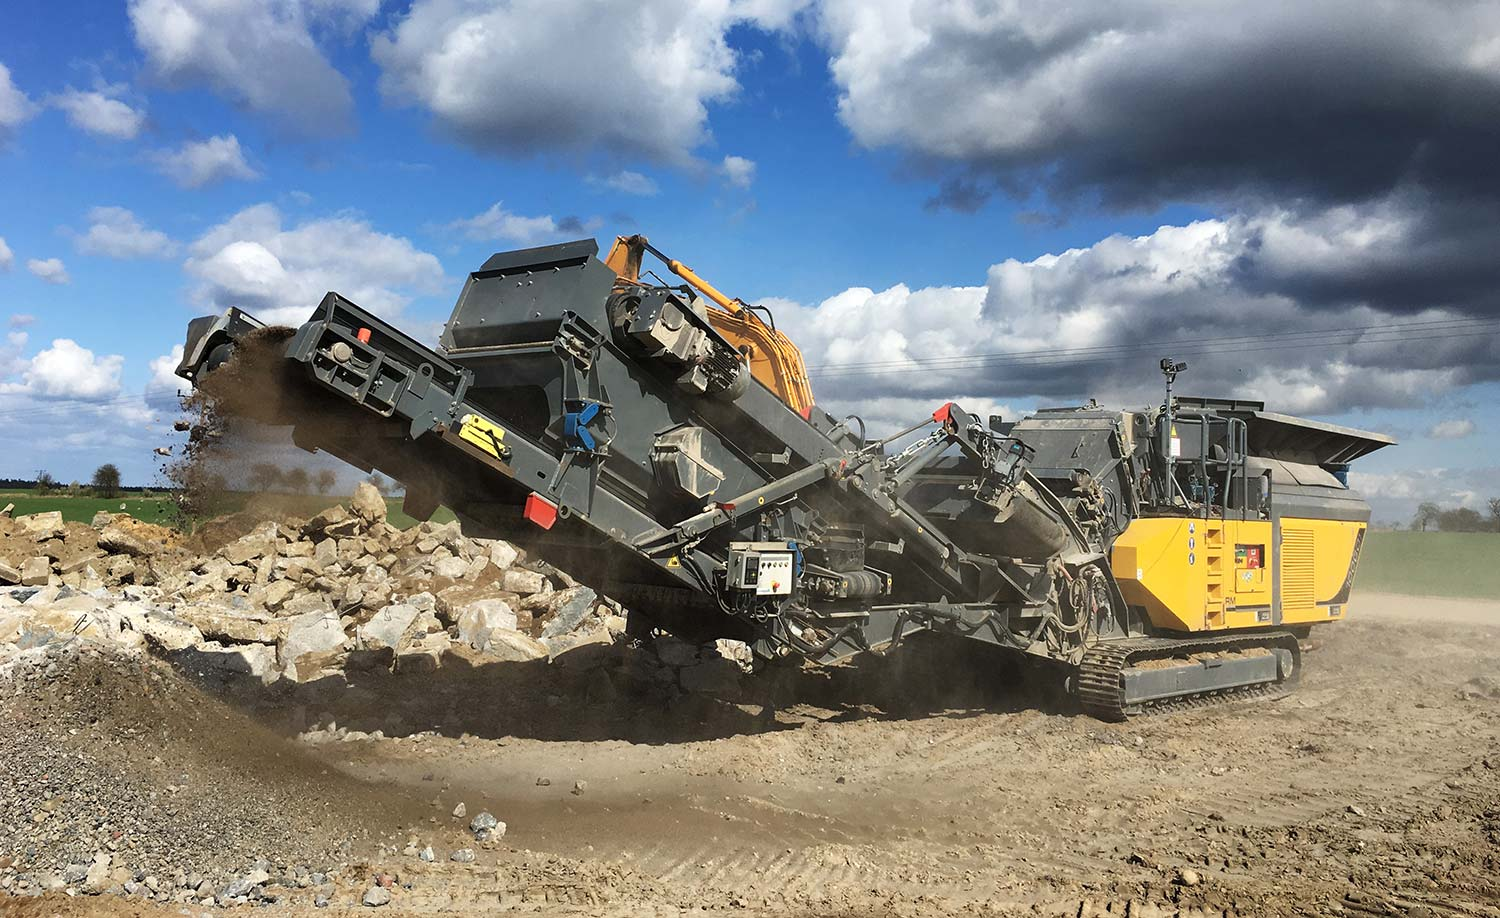 MHM new RM Rubble Master Compact Crushing RM100GO mobile crusher concrete